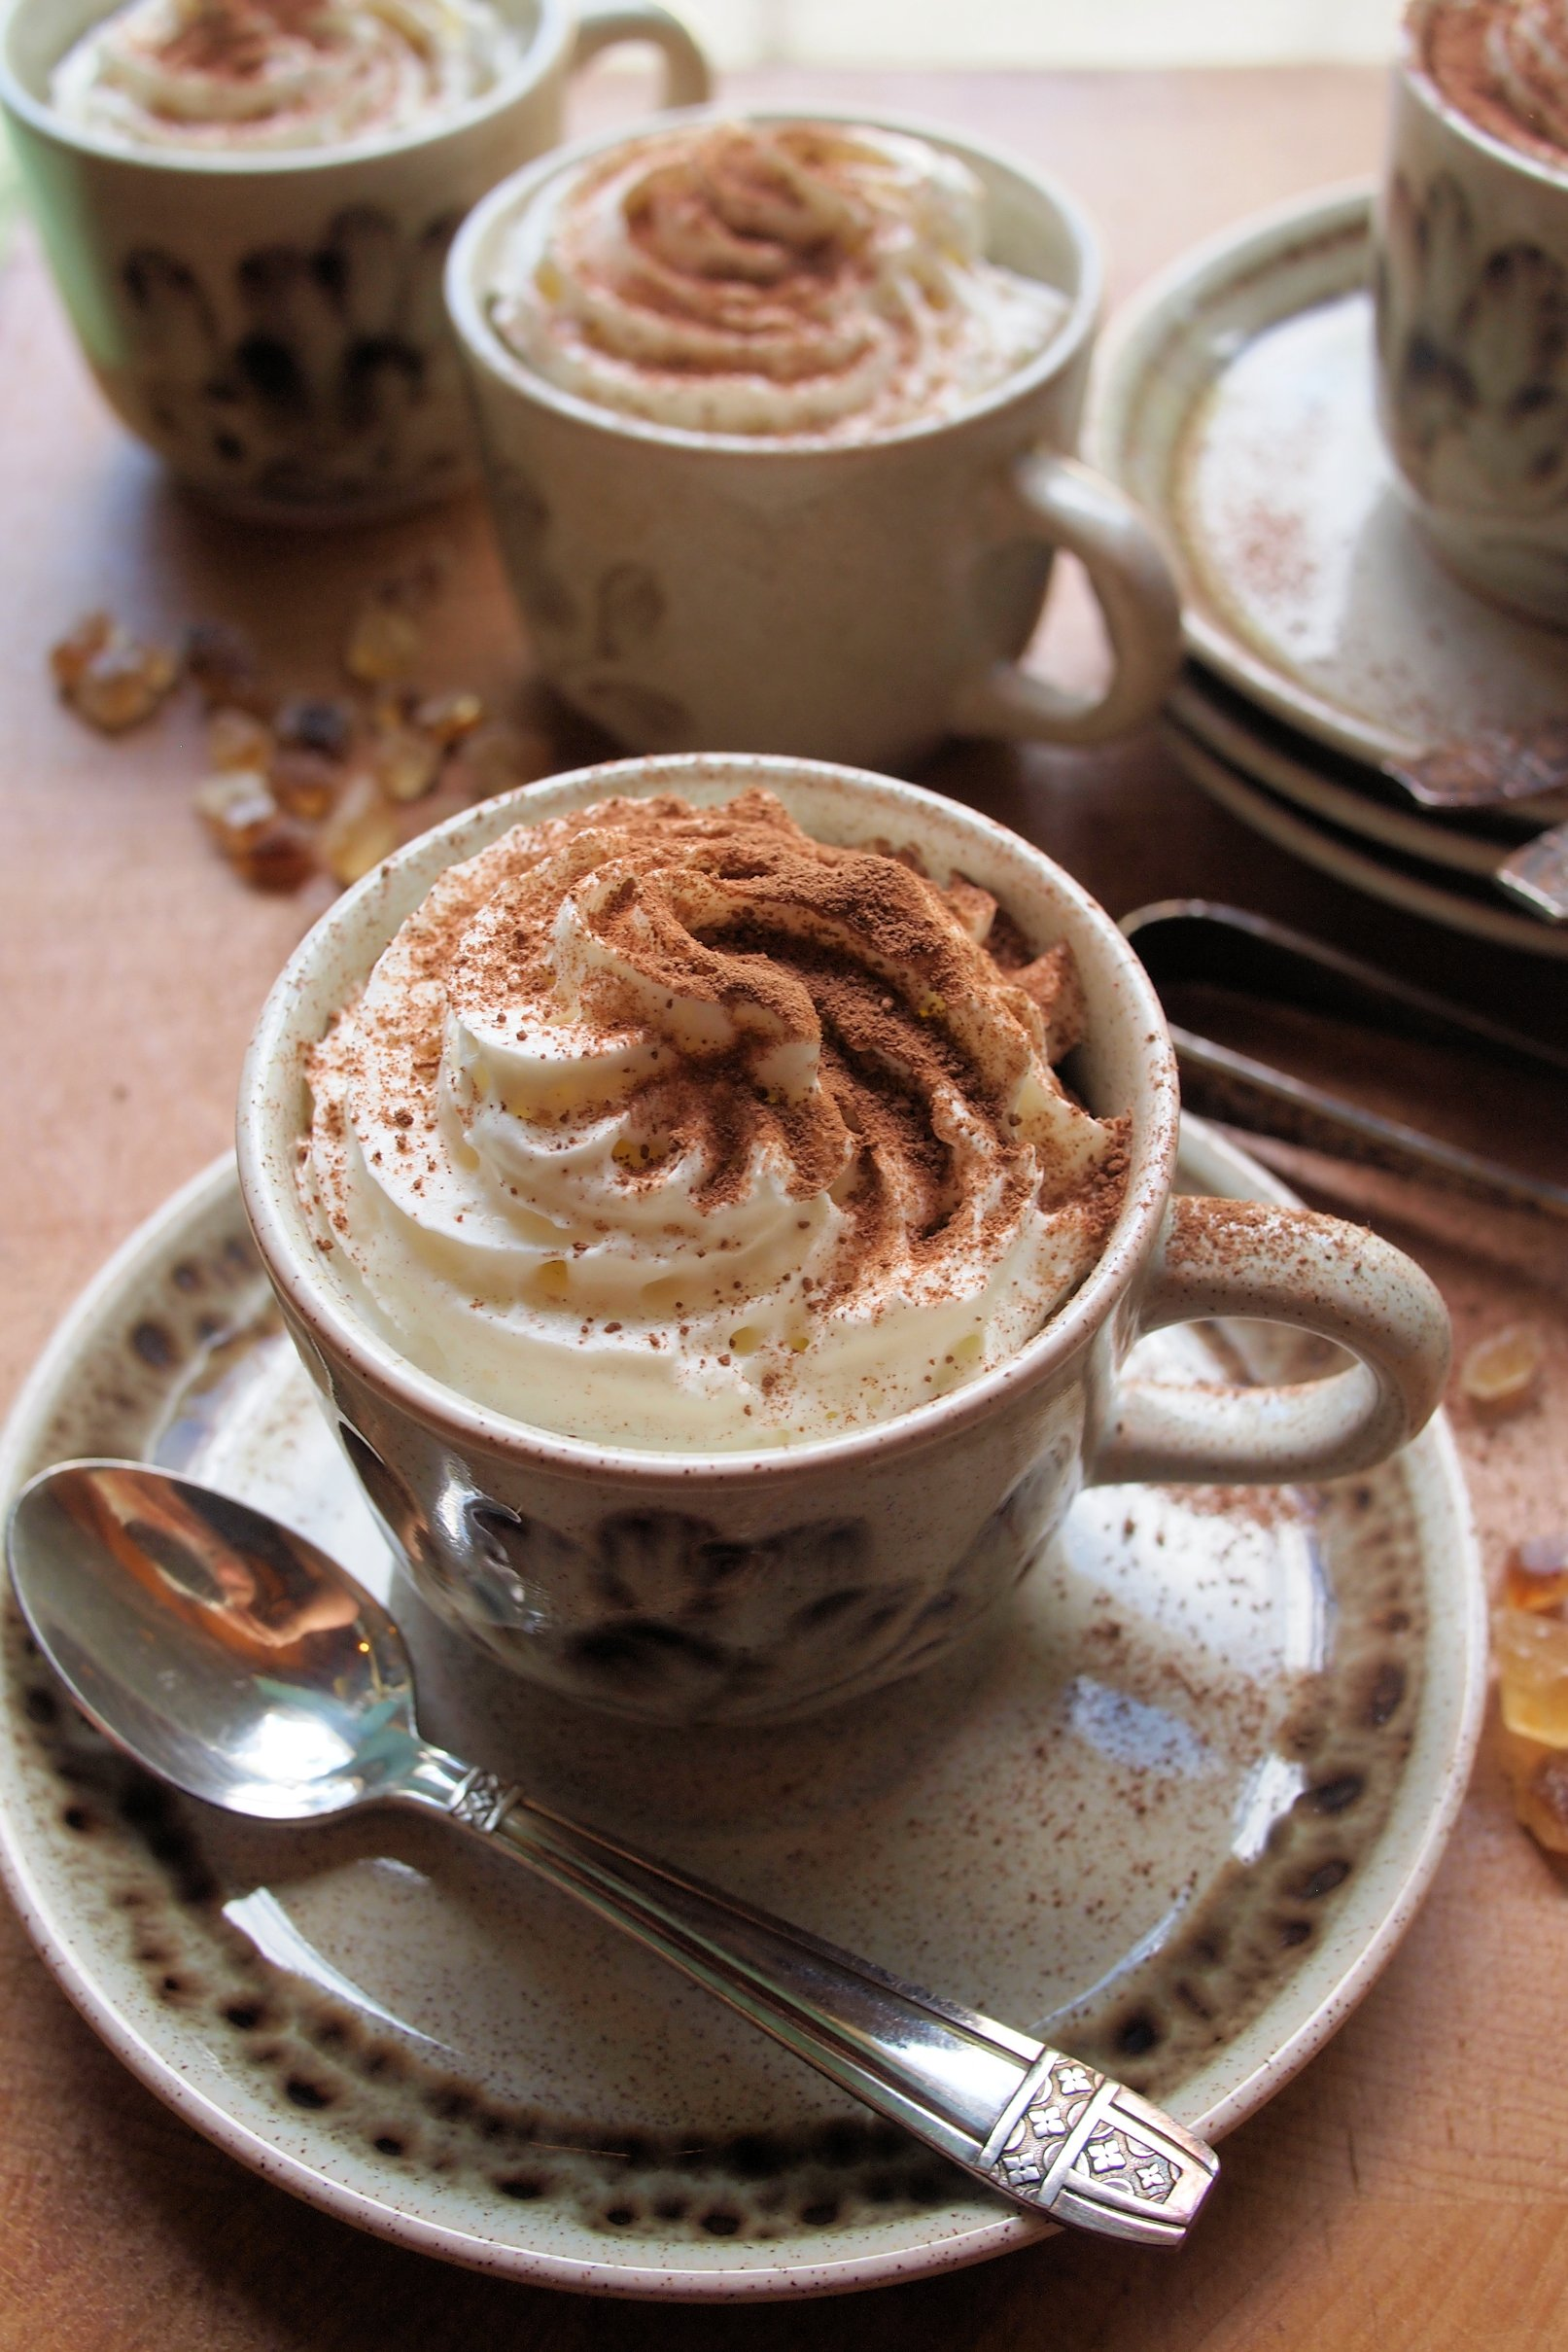 The Original Cup Cake - Little Coffee Cup Chocolate-Chip ...